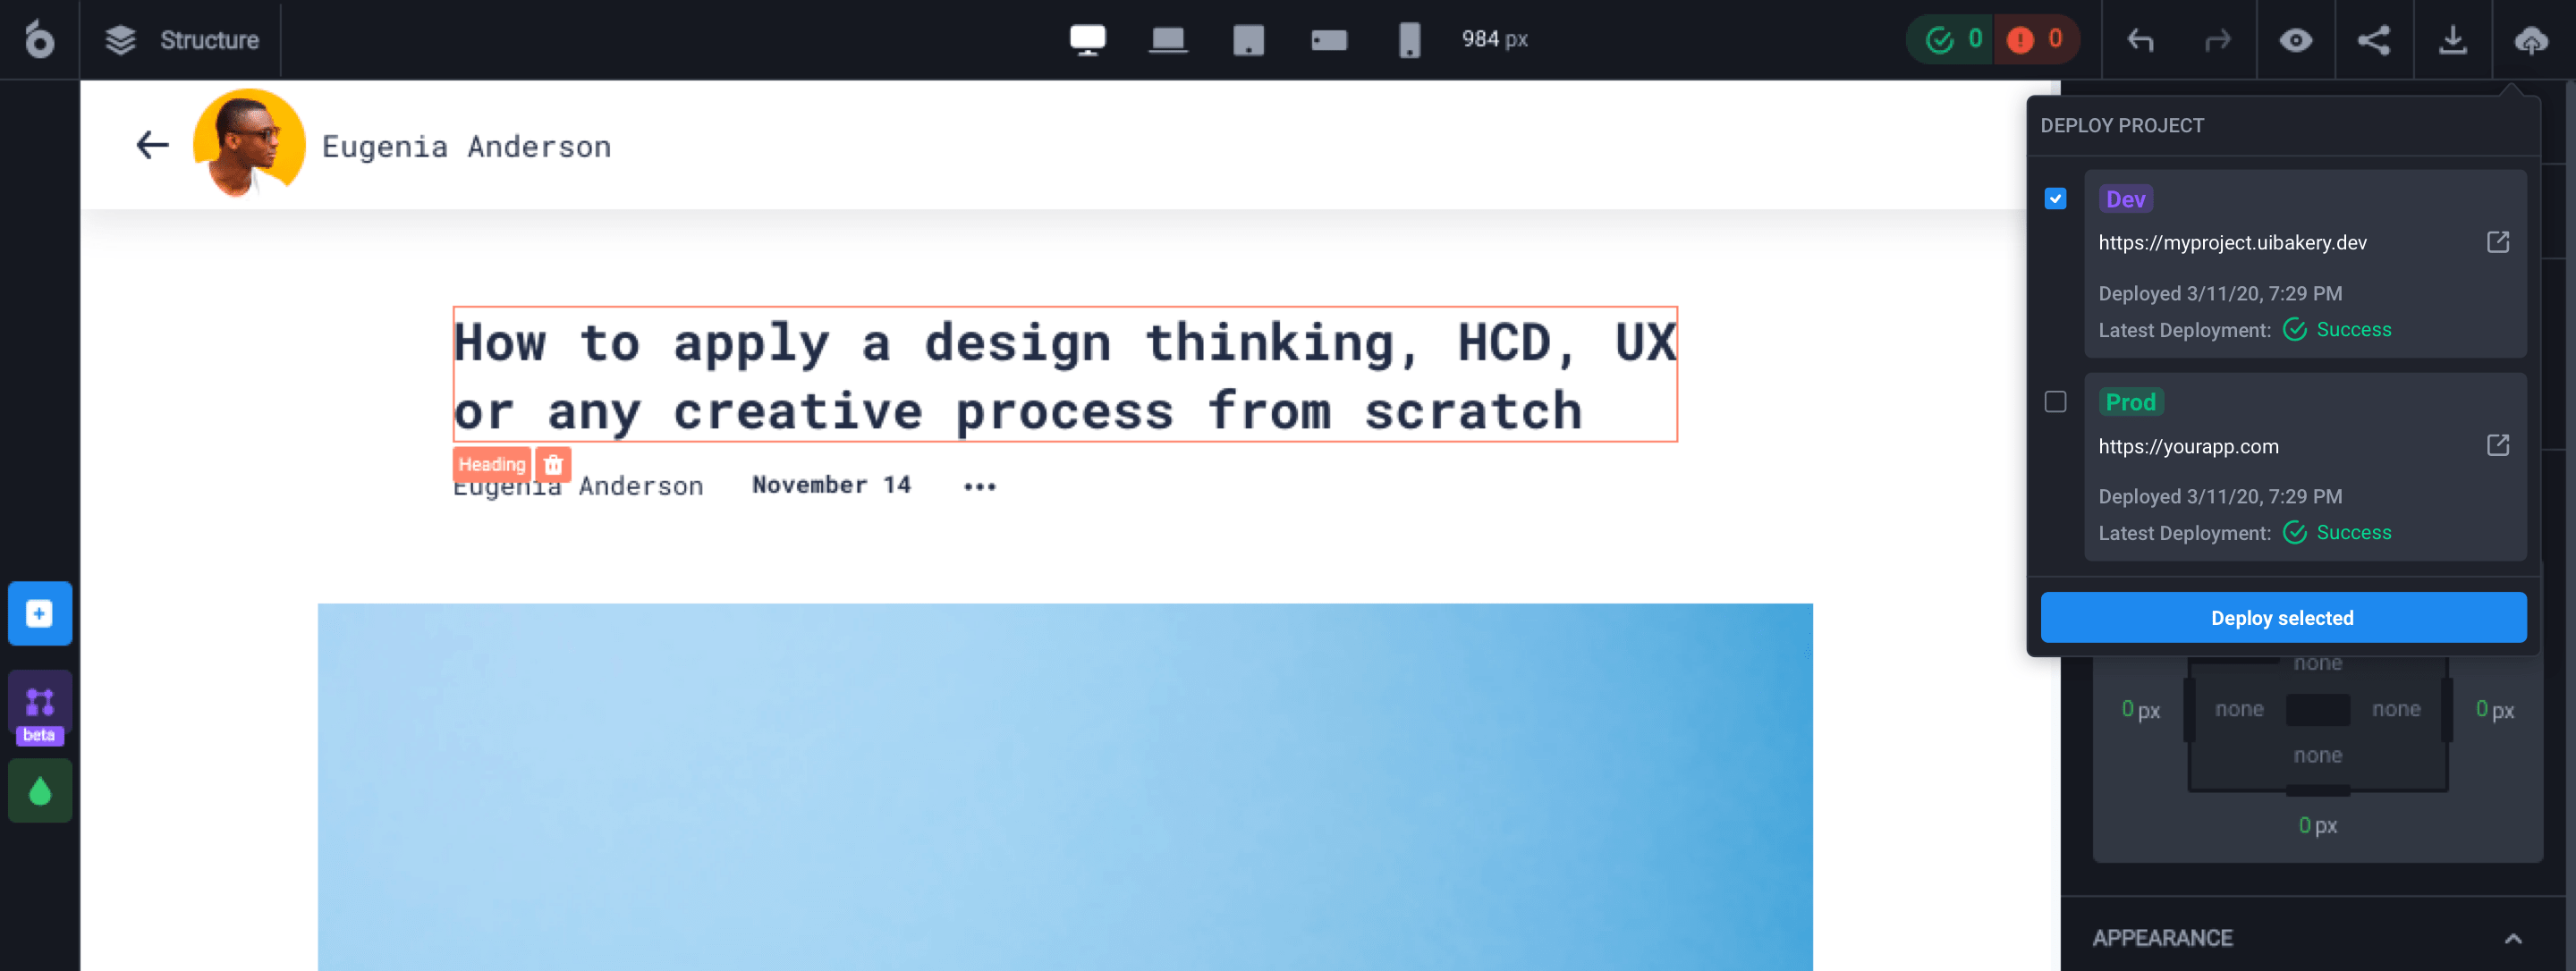 Make a web app responsive enough to fit desktop, tablet, mobile, and other screens